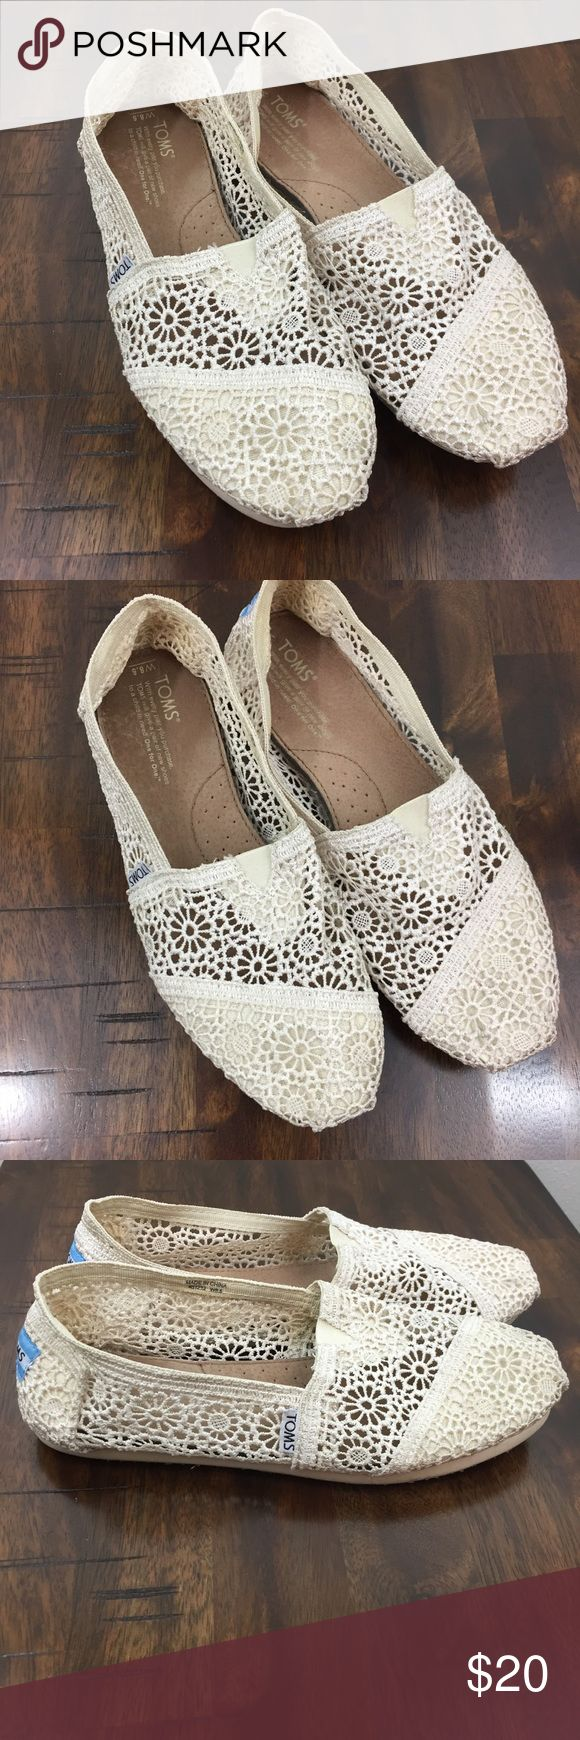 Cream Lace Toms Excellent condition. Very little wear. Toms Shoes Flats & Loafers